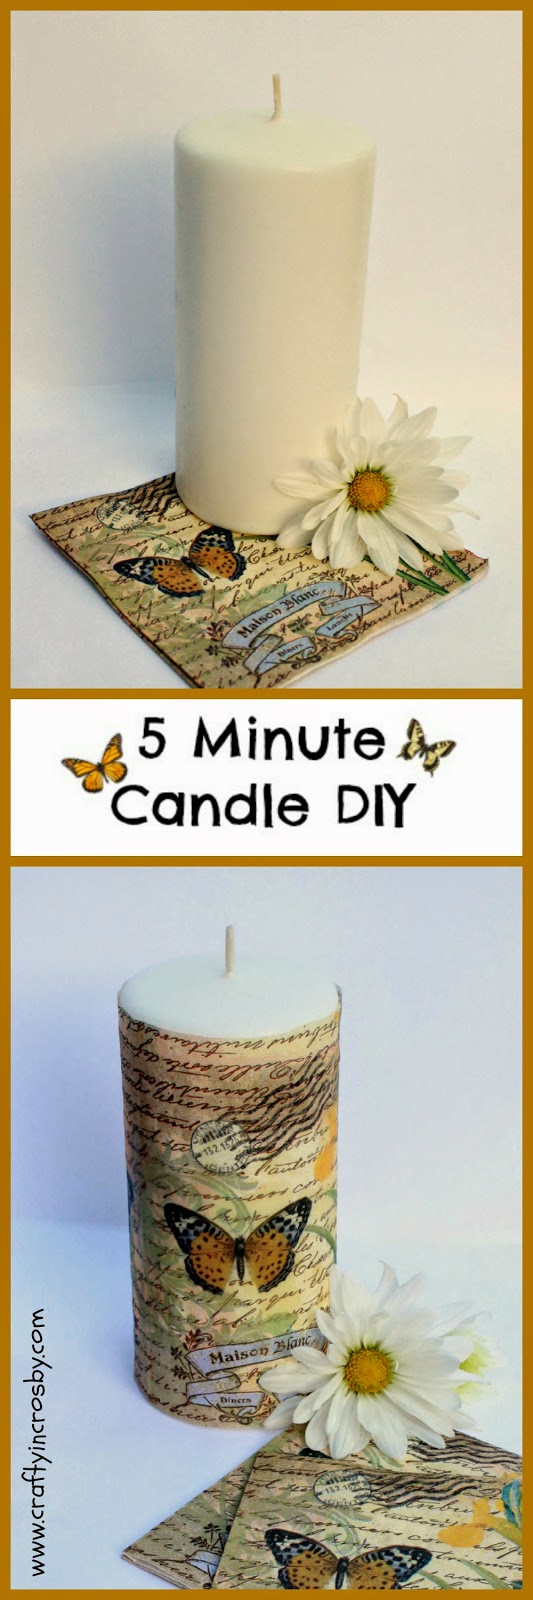 candle diy, designer candle diy, candle hack, candle decoration, Dollar Tree